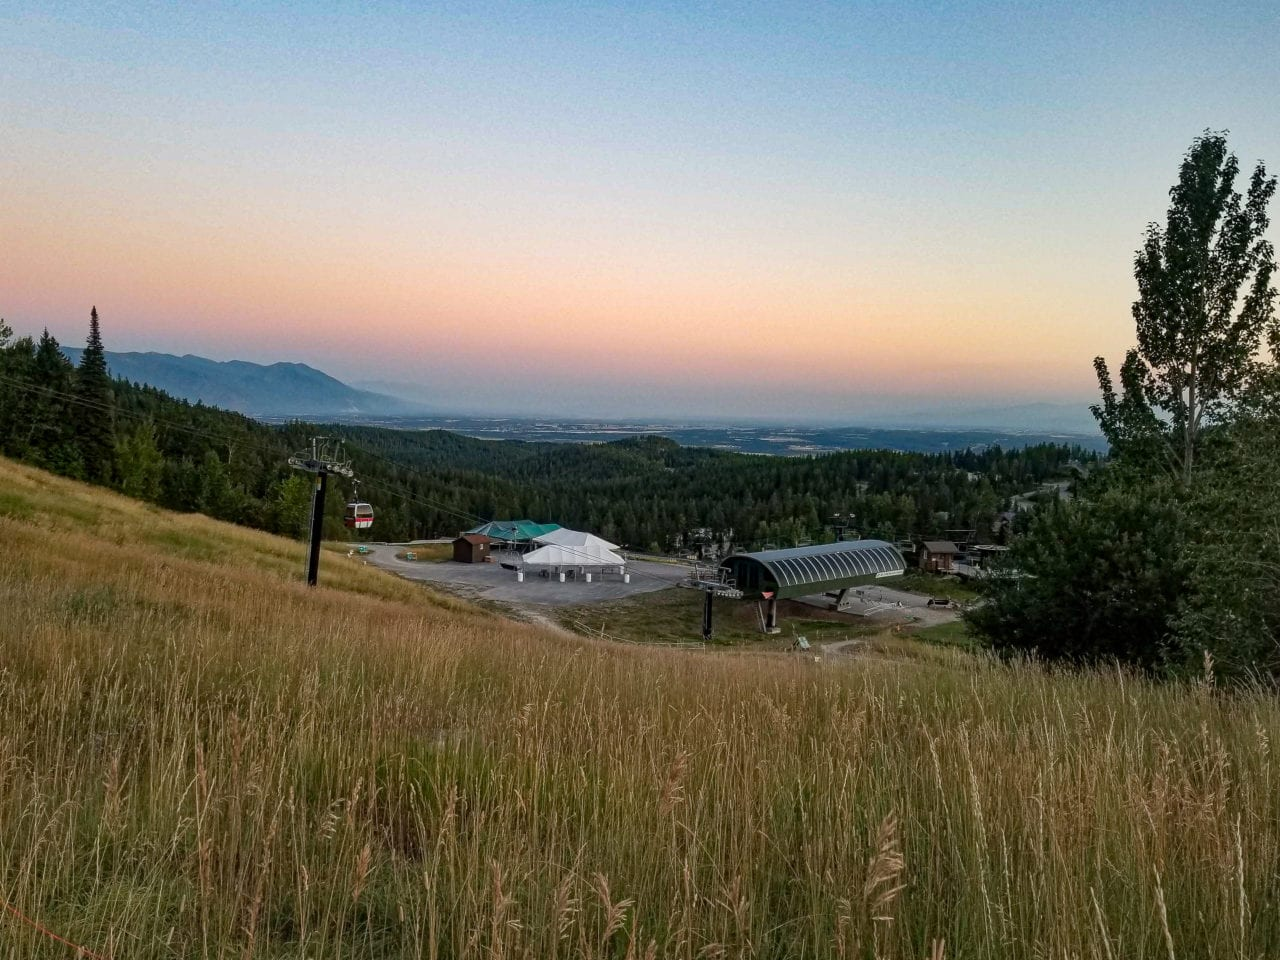 Whitefish Mountain Resort on a late summer sunset